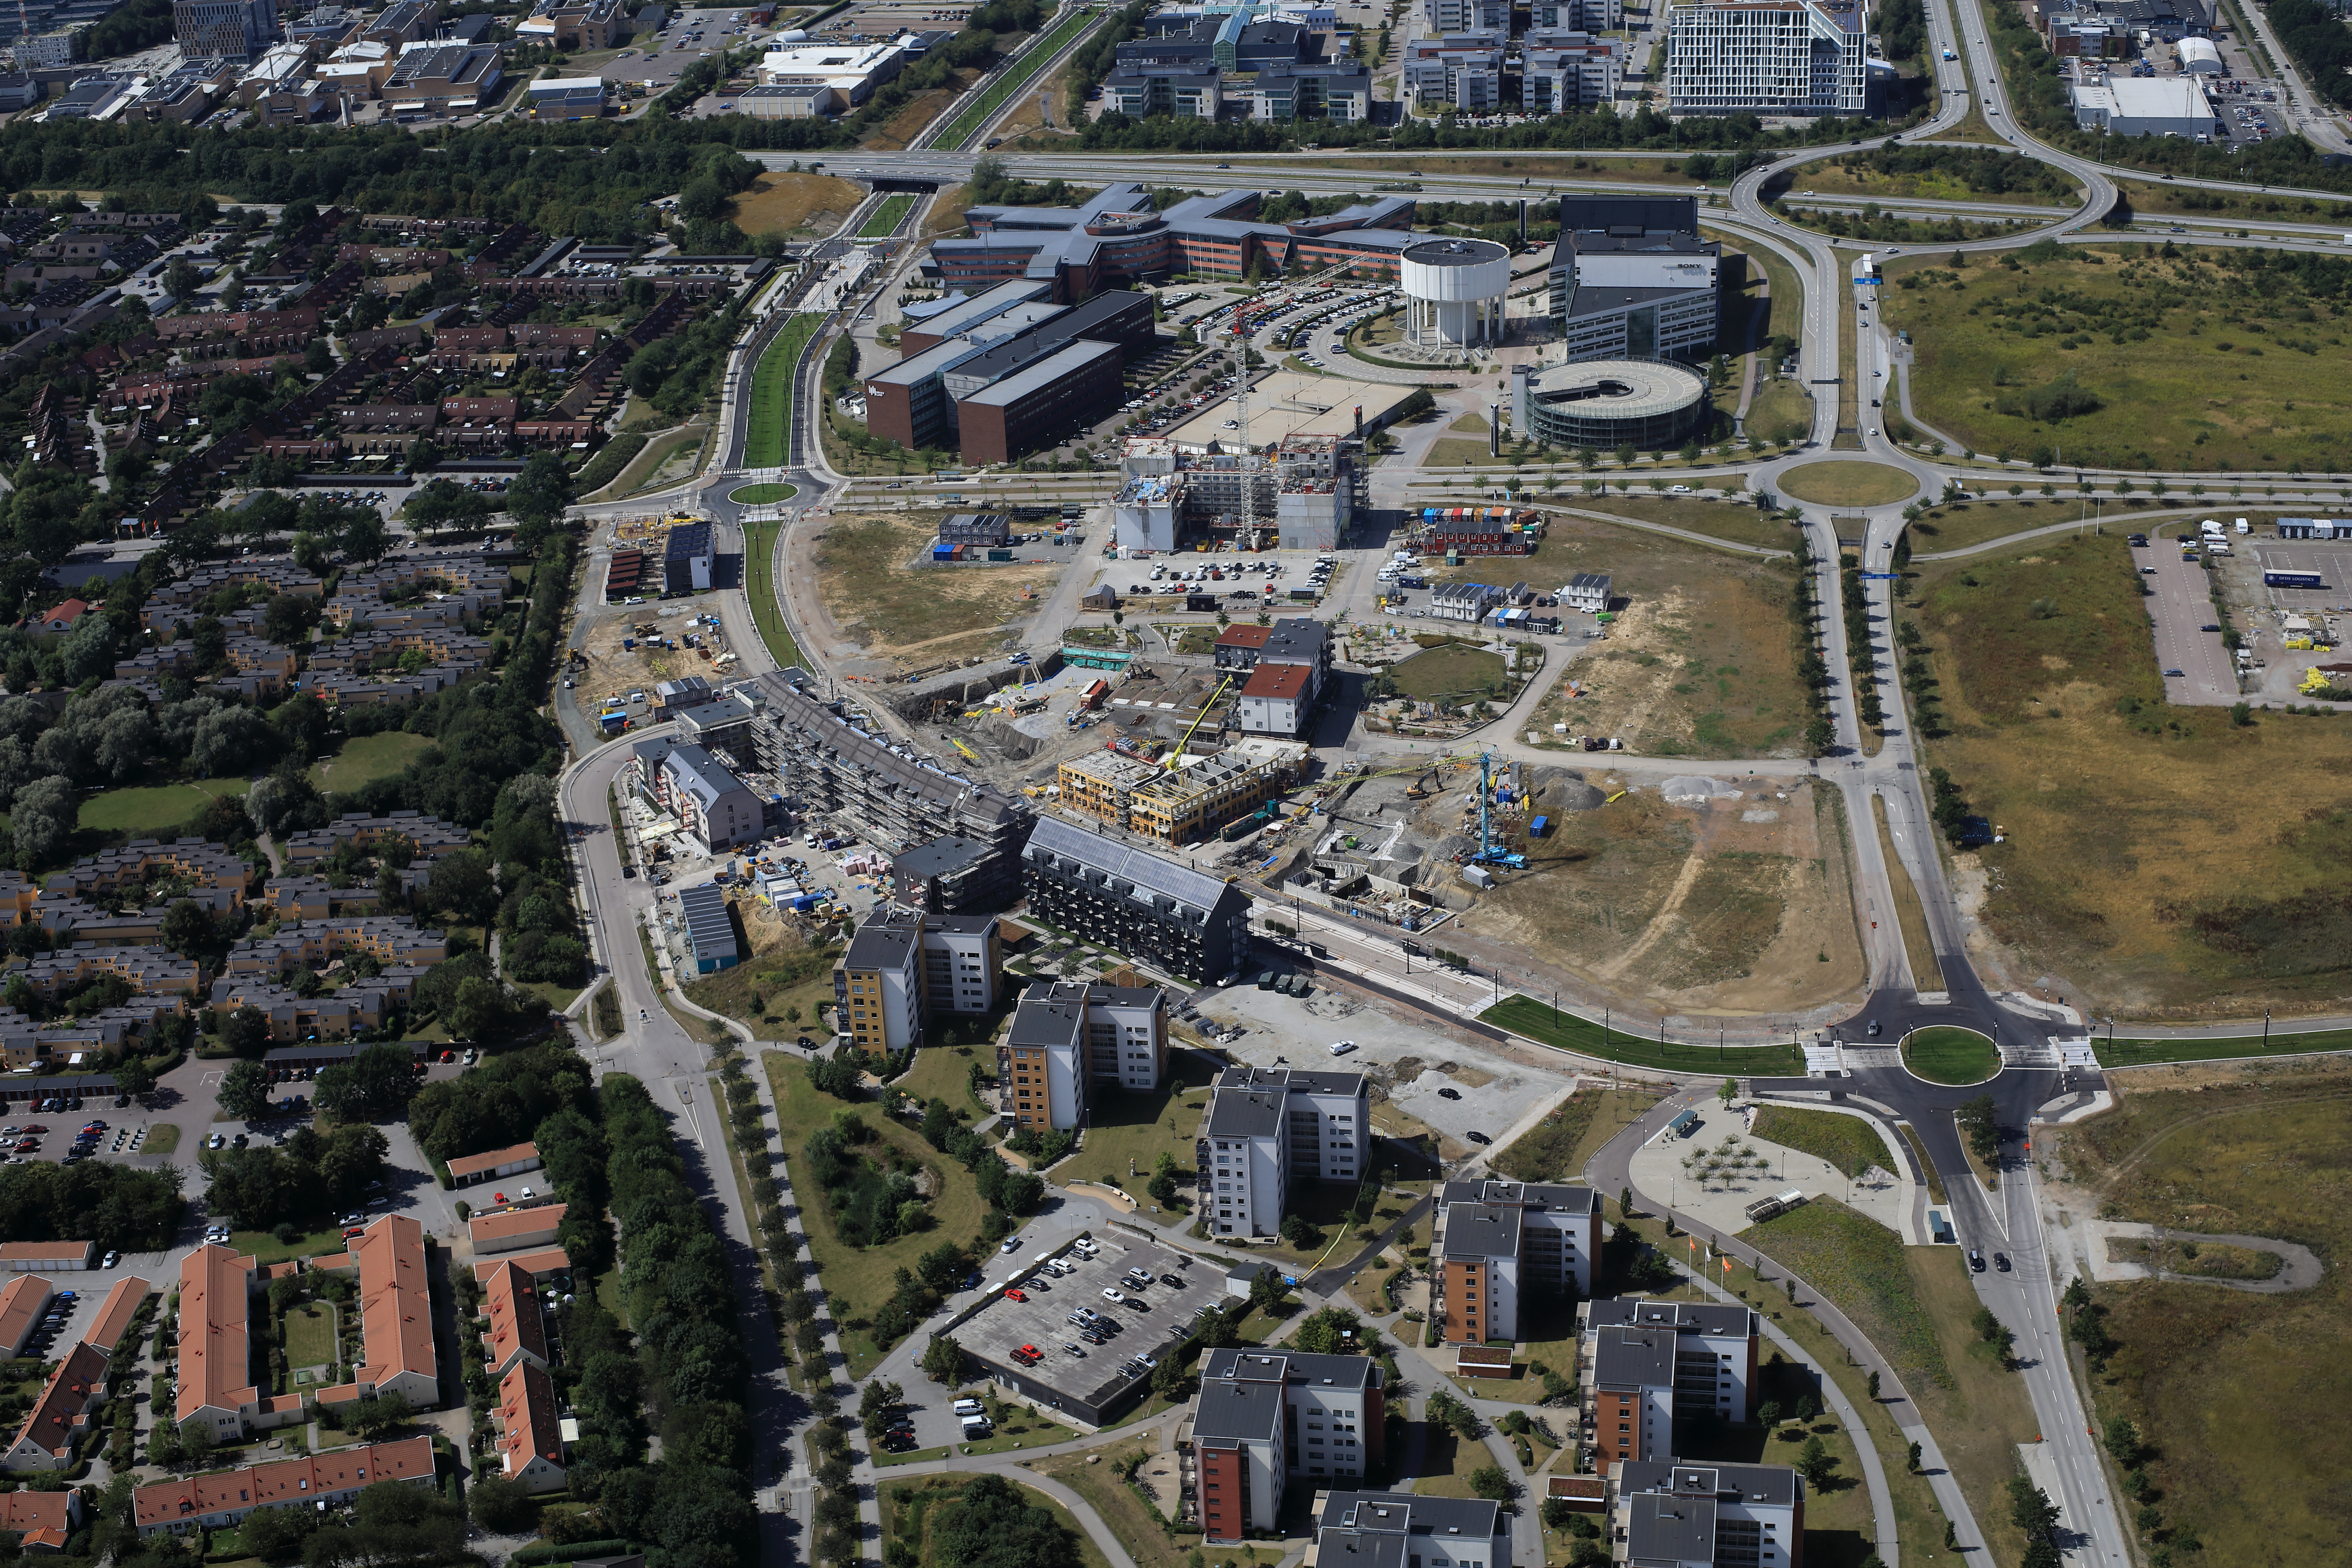 Air-photo of south Brunnshög, a new city district in Lund, Sweden.